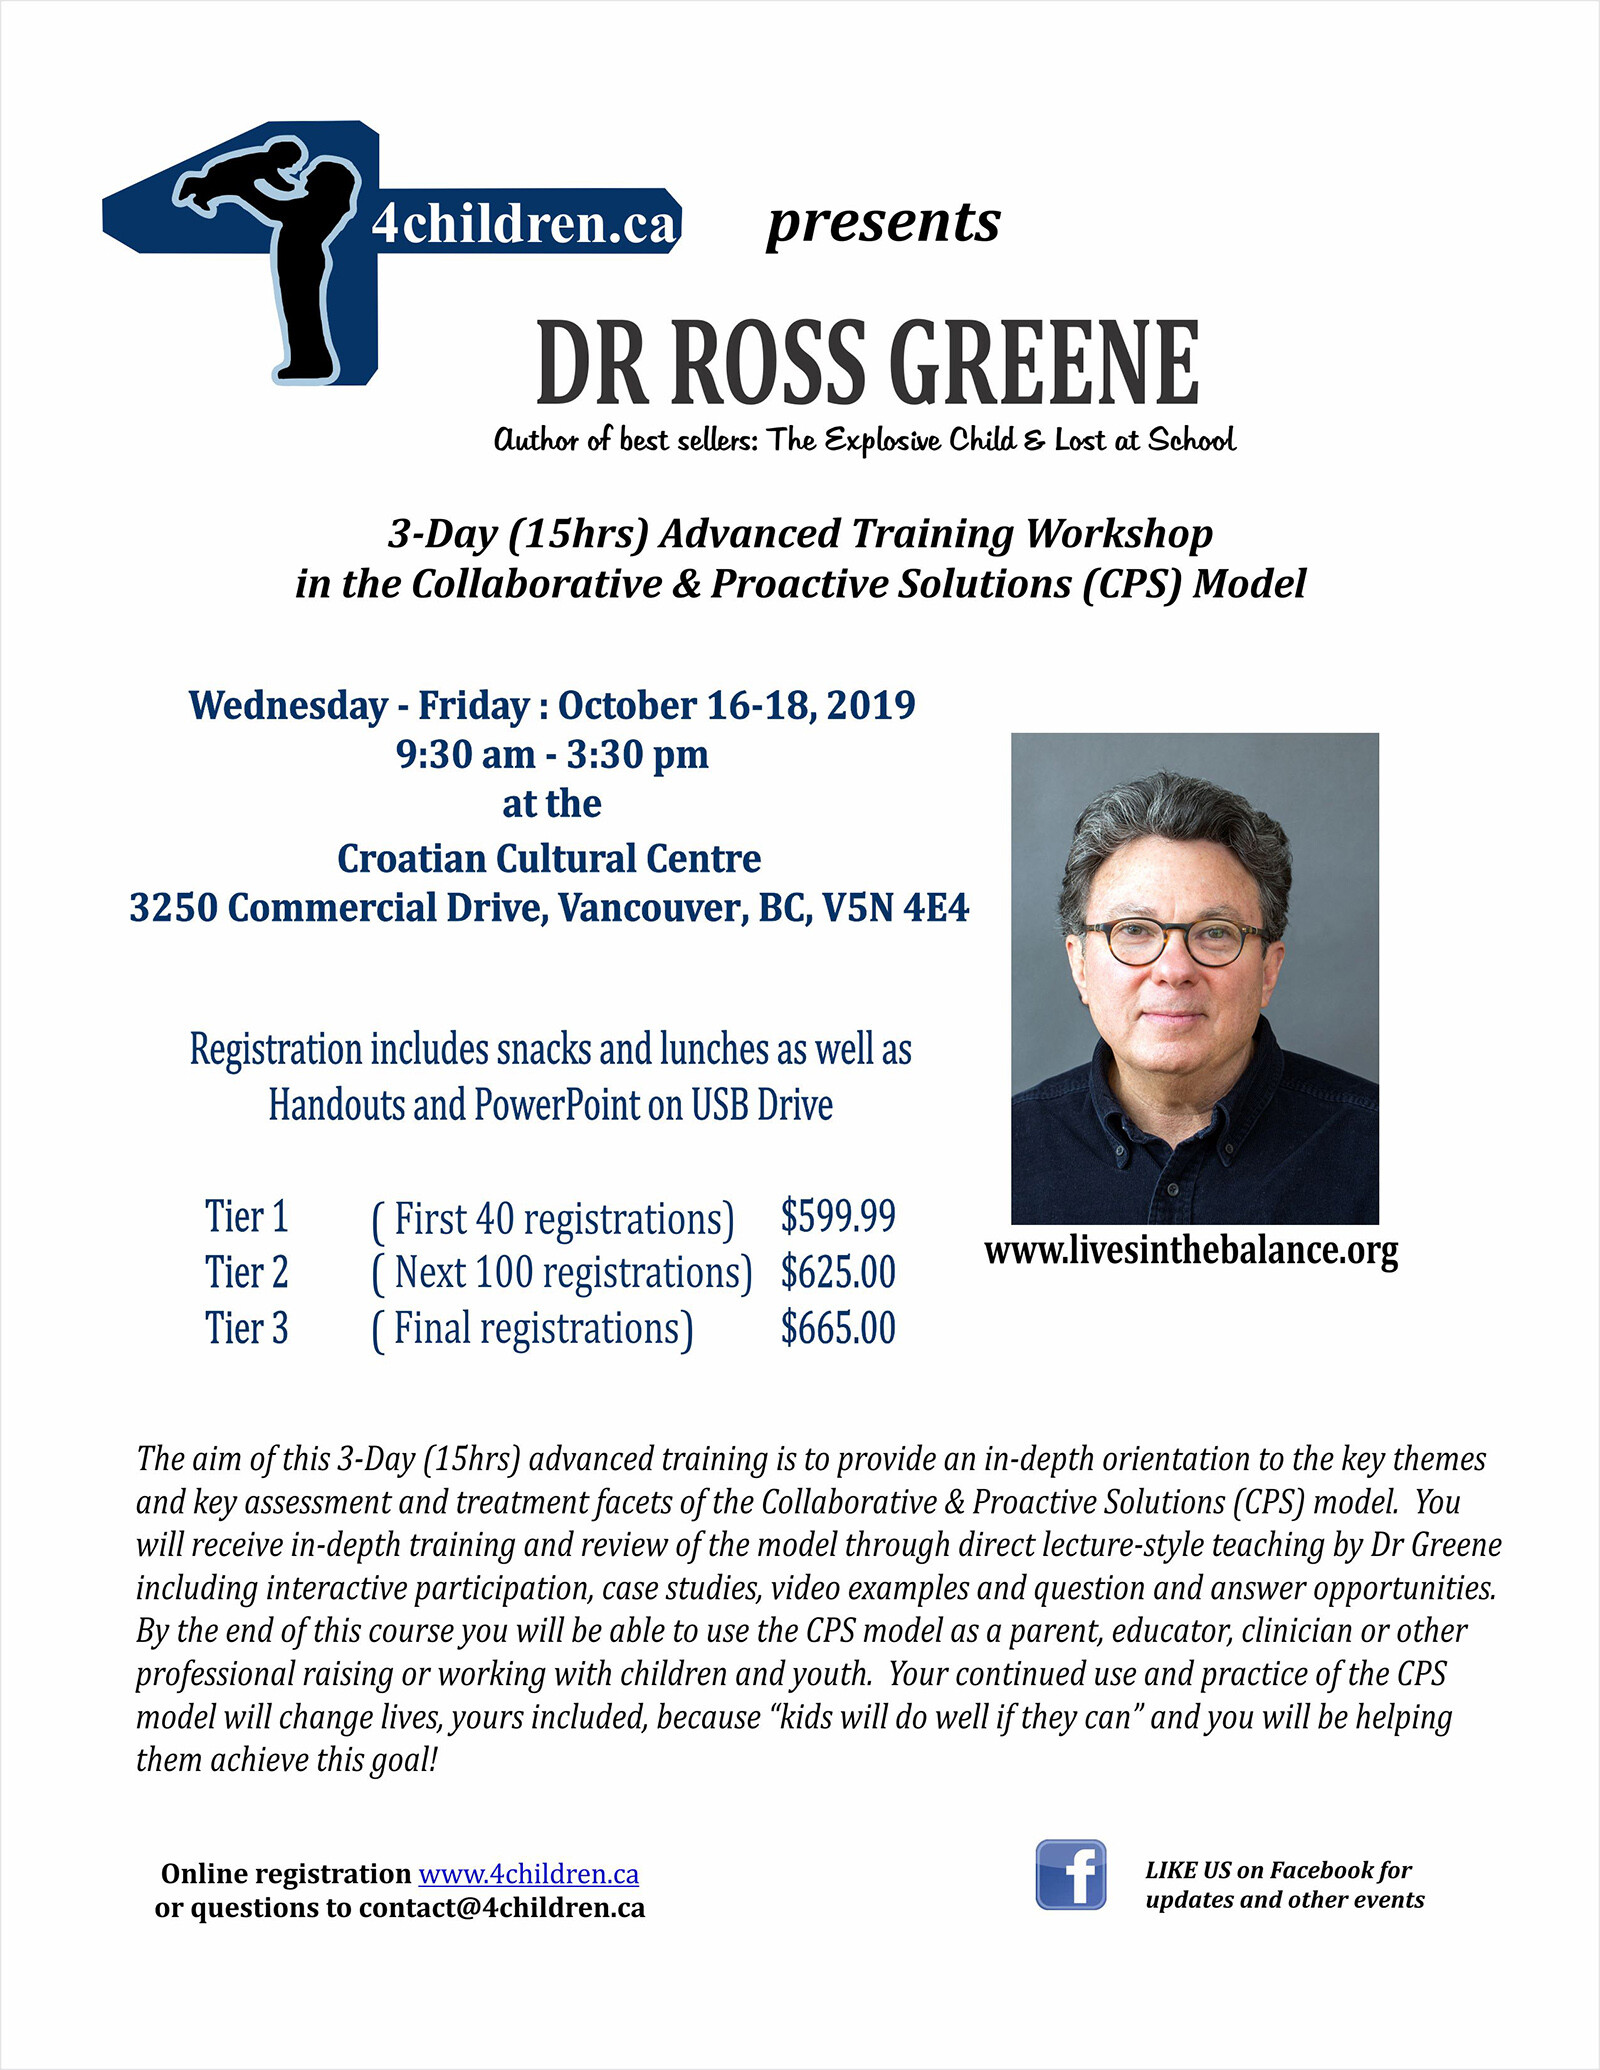 3-Day Advanced Training Workshop with Dr Ross Greene